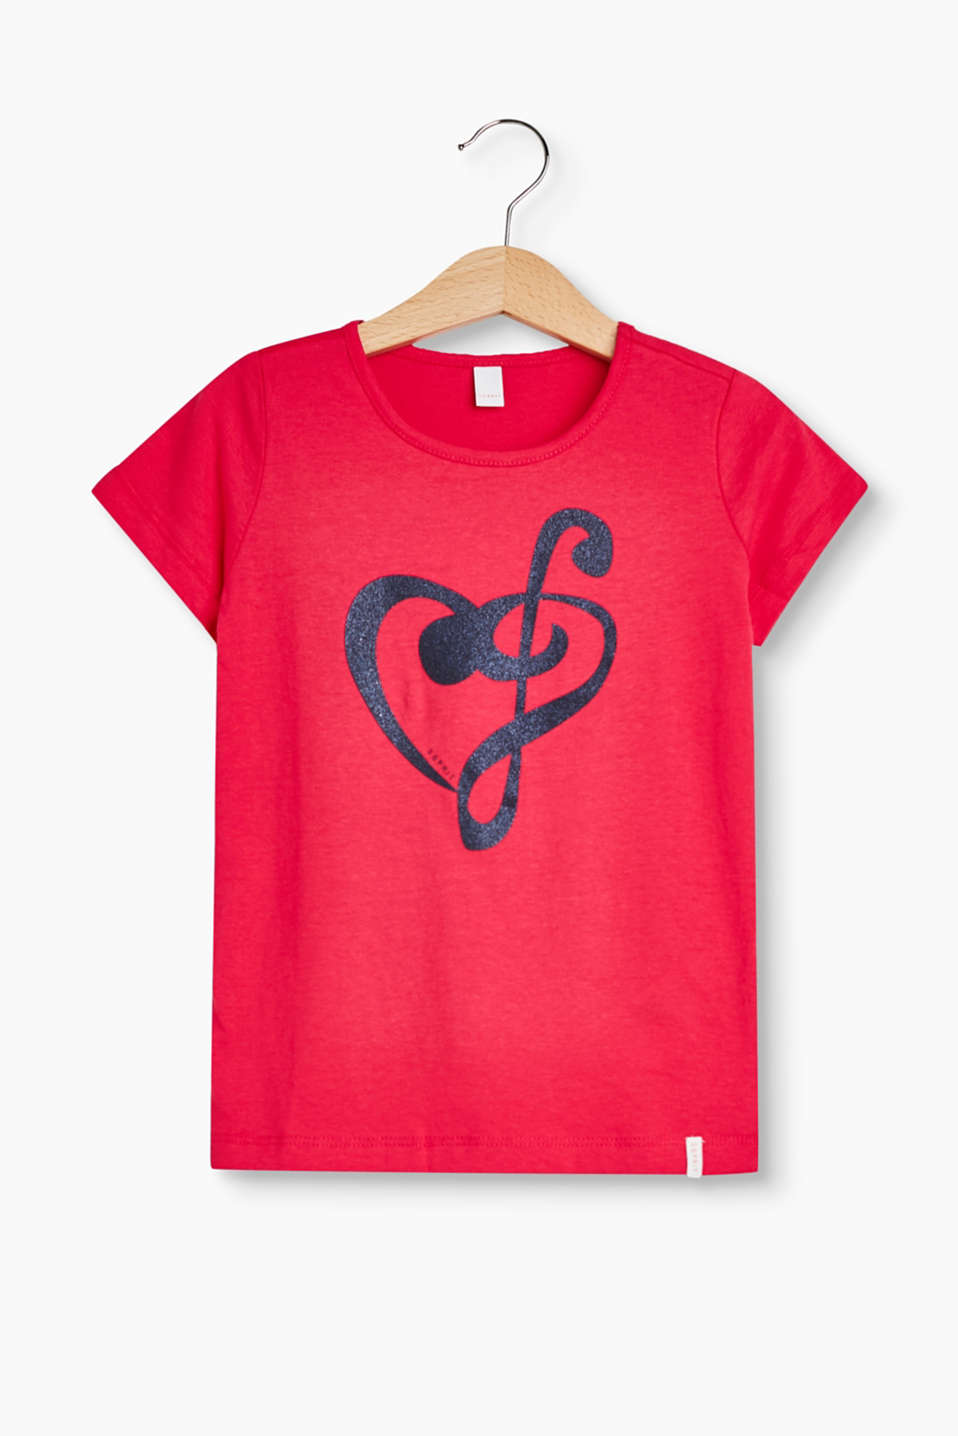 With a glittery heart note: T-shirt in soft cotton jersey